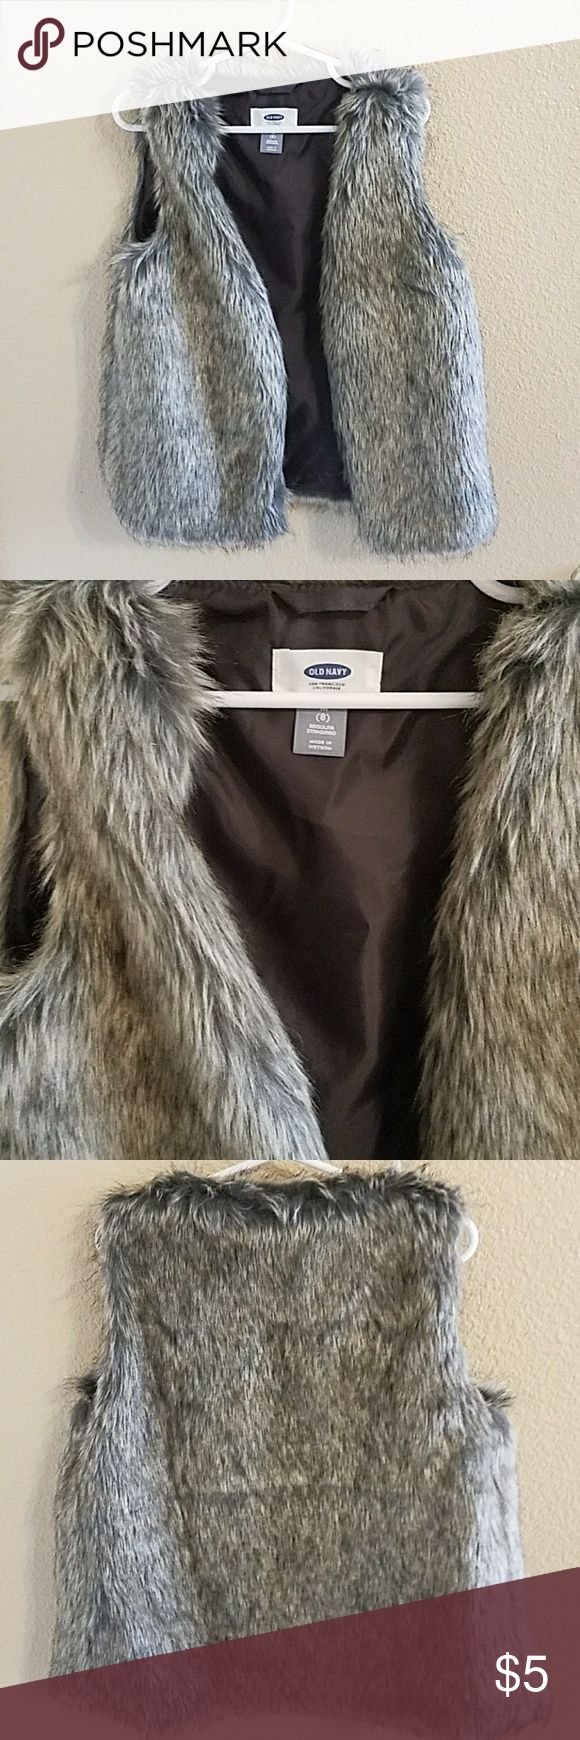 Old Navy Faux Fur Vest Girls Size 8 So Cute! Old Navy Girls Faux Fur Vest NWOT Size 8 Excellent  Condition Never Worn Old Navy Jackets & Coats Vests